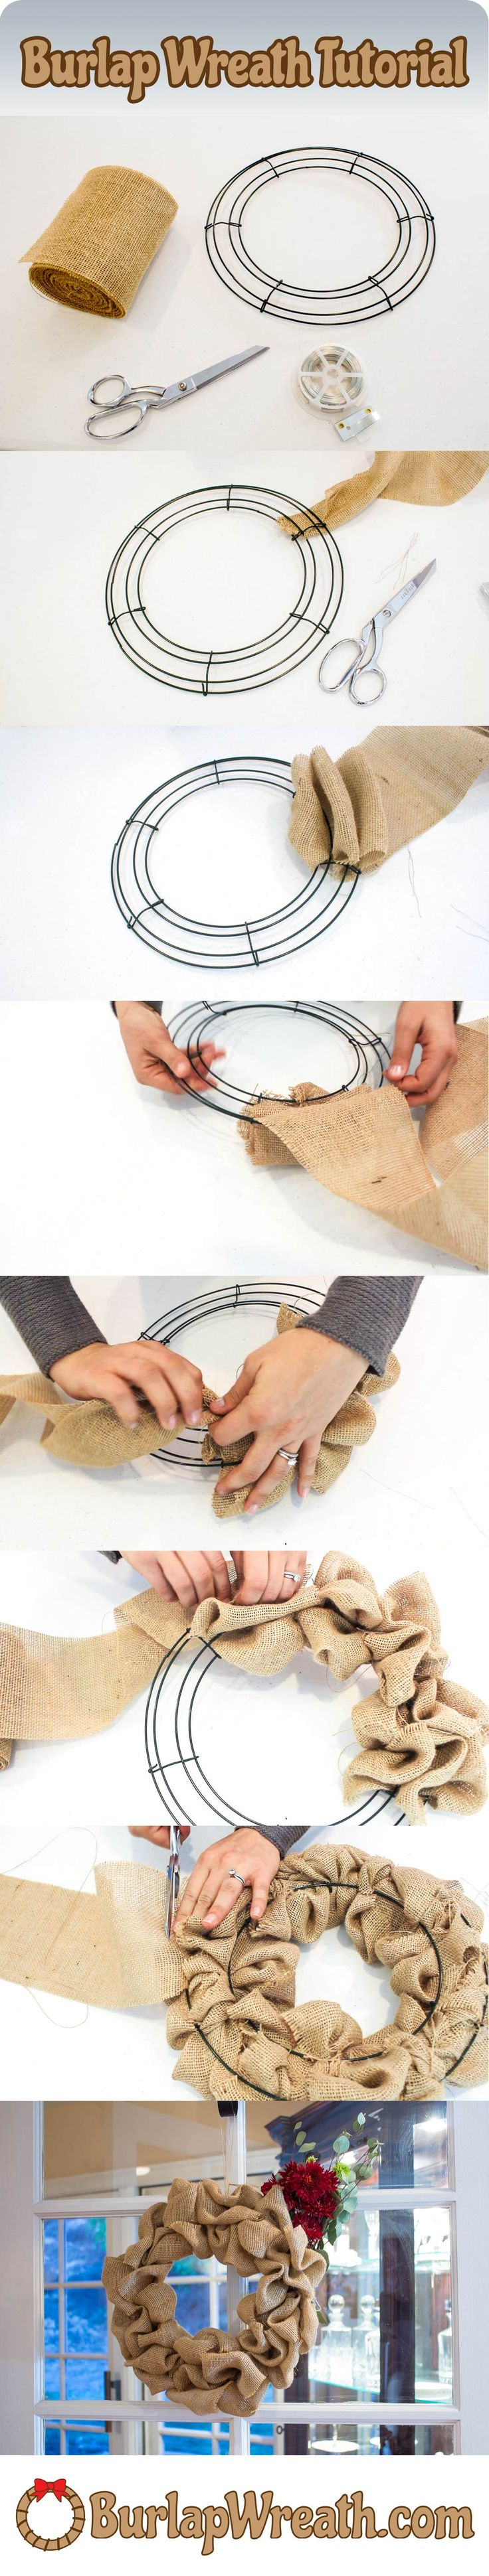 How to make a burlap wreath: Want to make a burlap wreath? Check out this easy to use tutorial showing you how to make a burlap